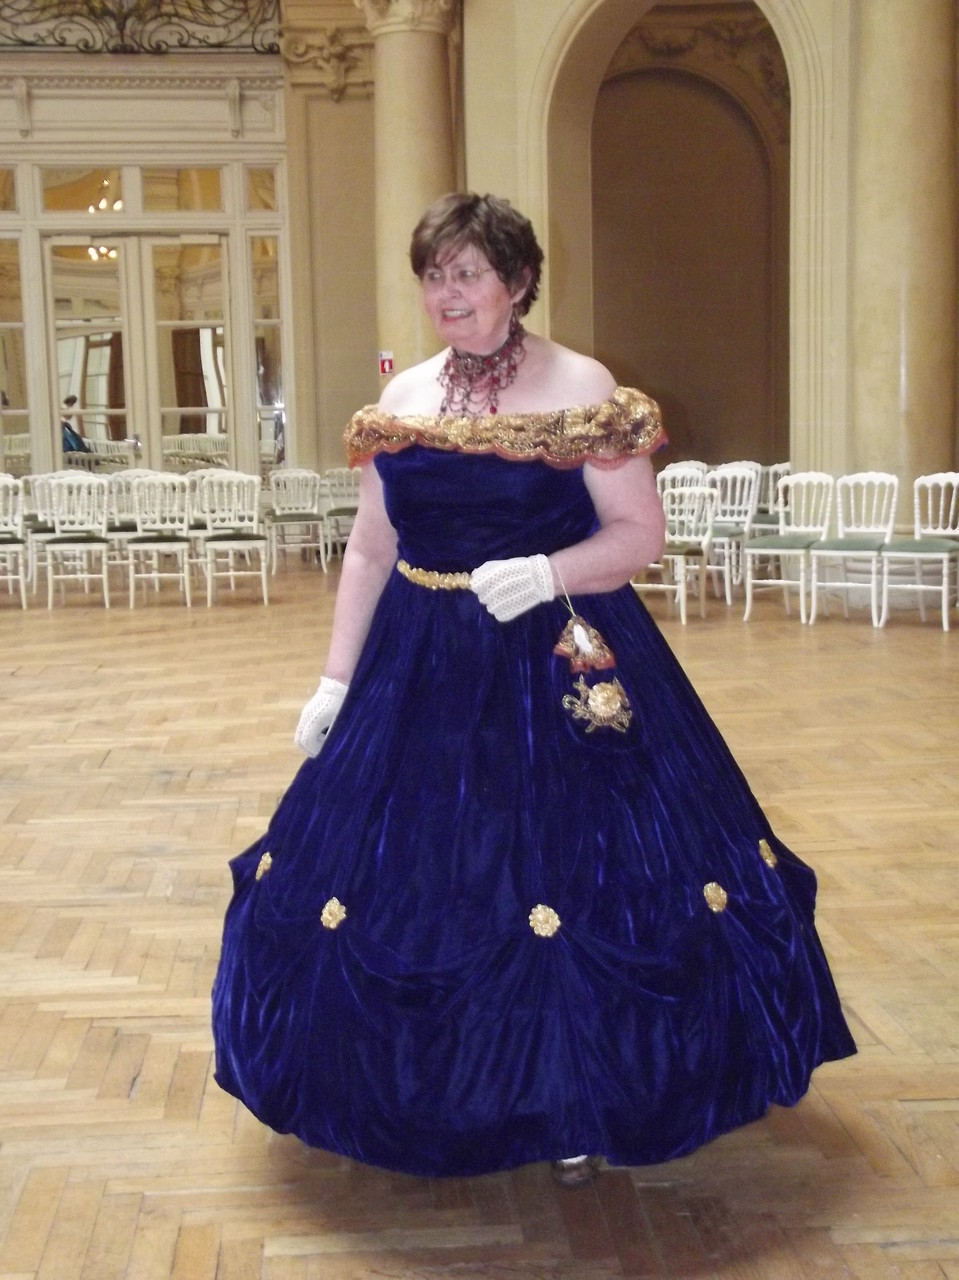 Robe second empire en velours de soie bleu royal - Fêtes de Napoléon III à Vichy avril 2014 - Nathalie Navarro Créations